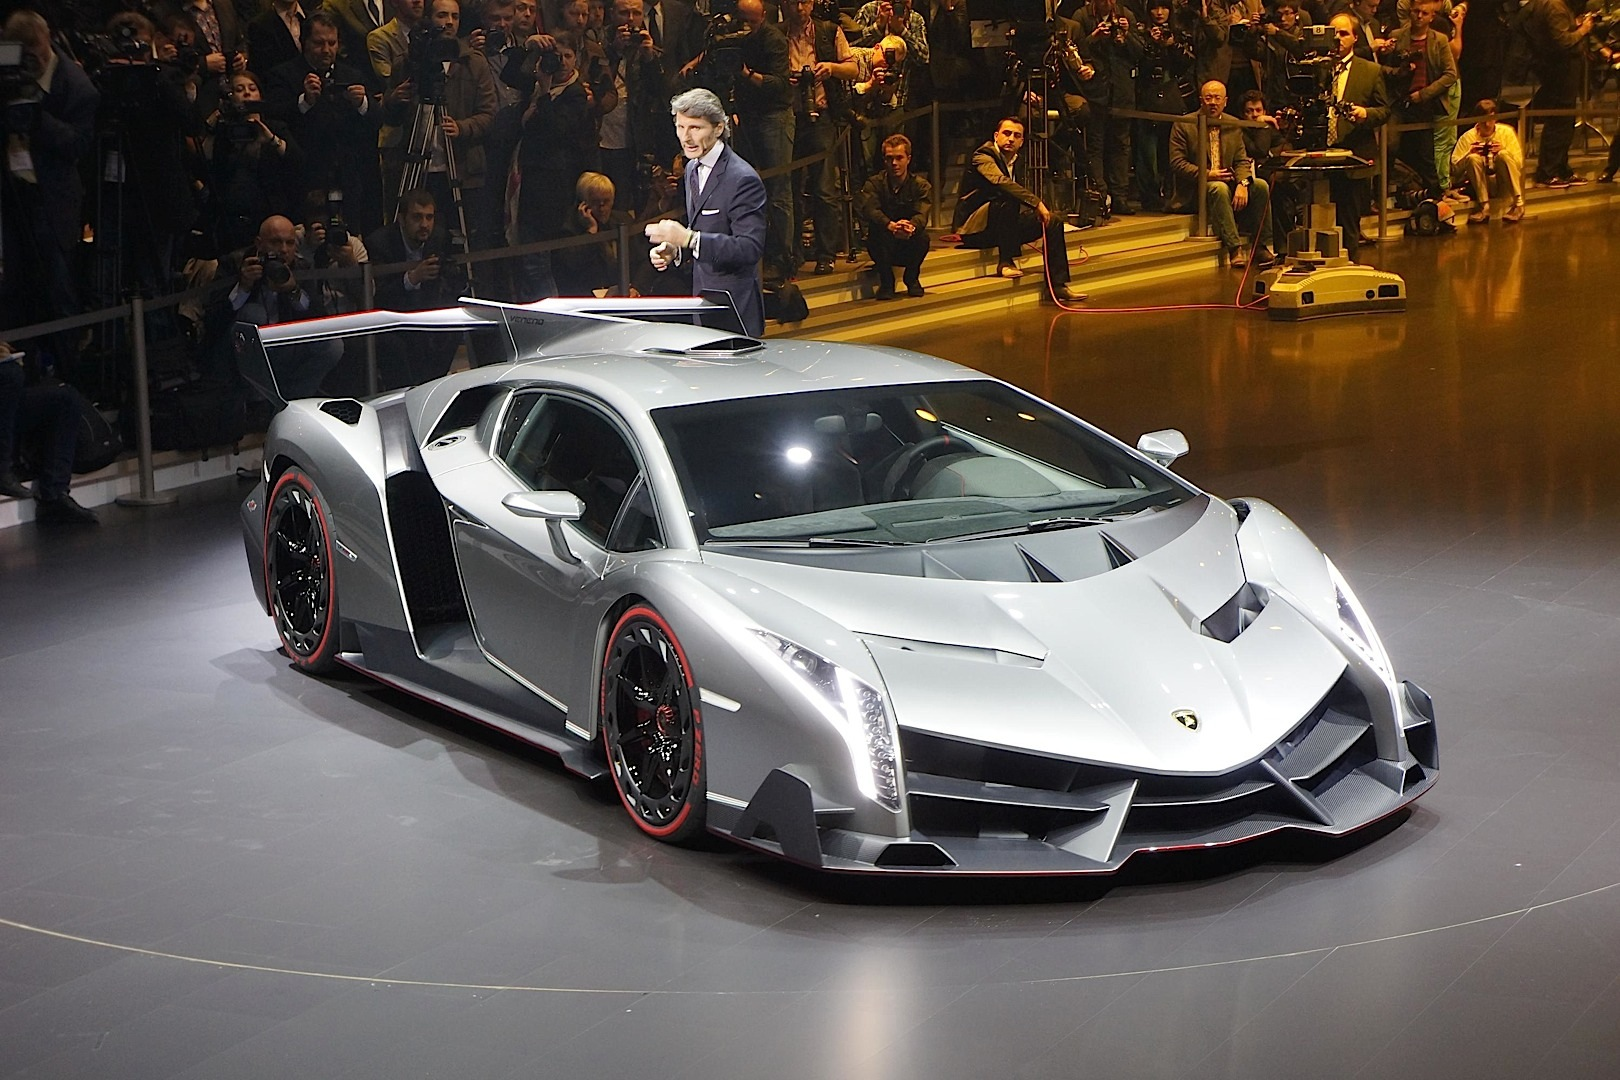 lamborghini veneno up for sale with 112 miles it 39 s a money making hypercar autoevolution. Black Bedroom Furniture Sets. Home Design Ideas